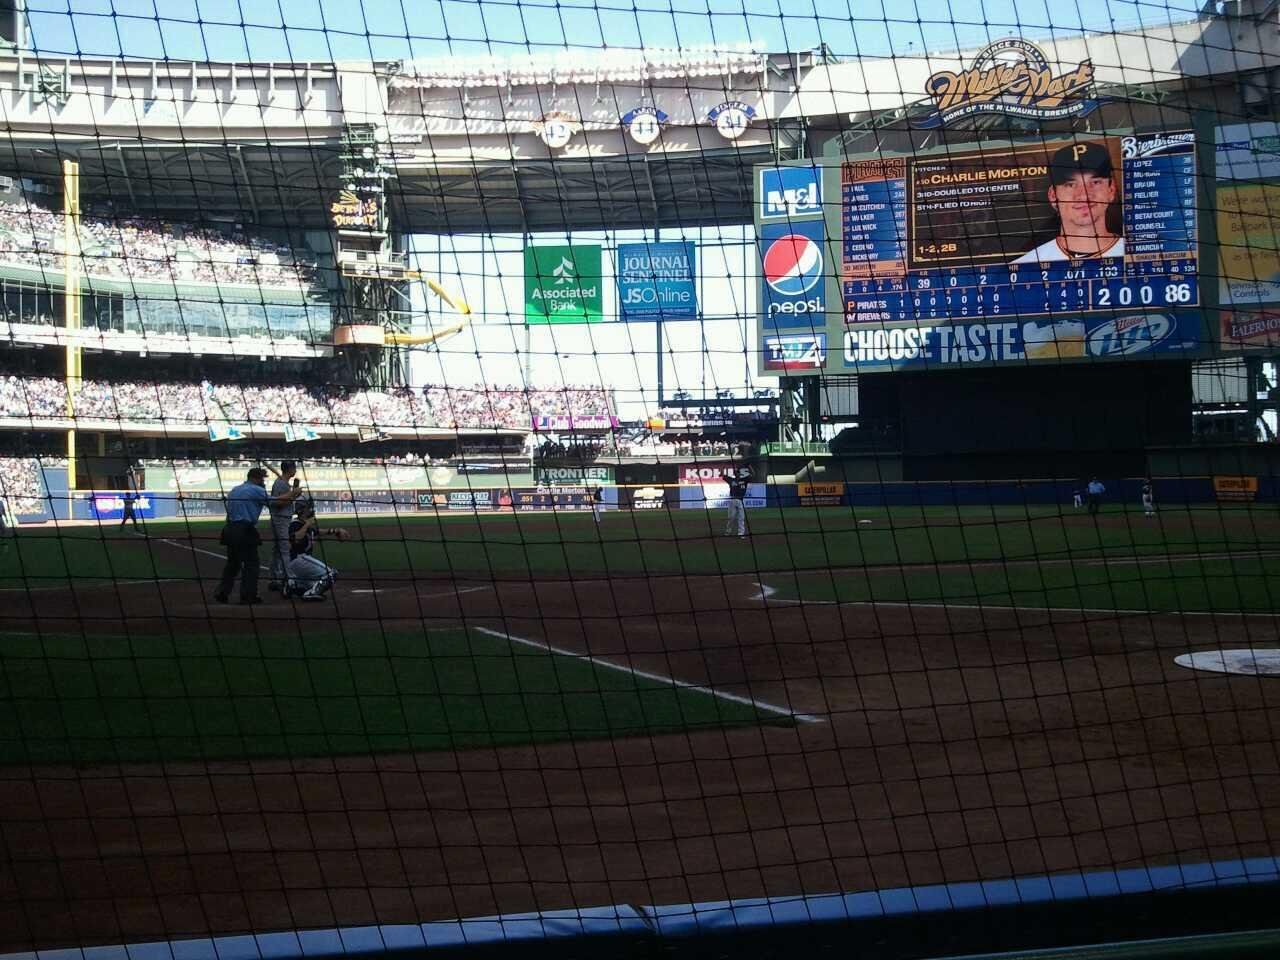 American Family Field Section 116 Row 2 Seat 7